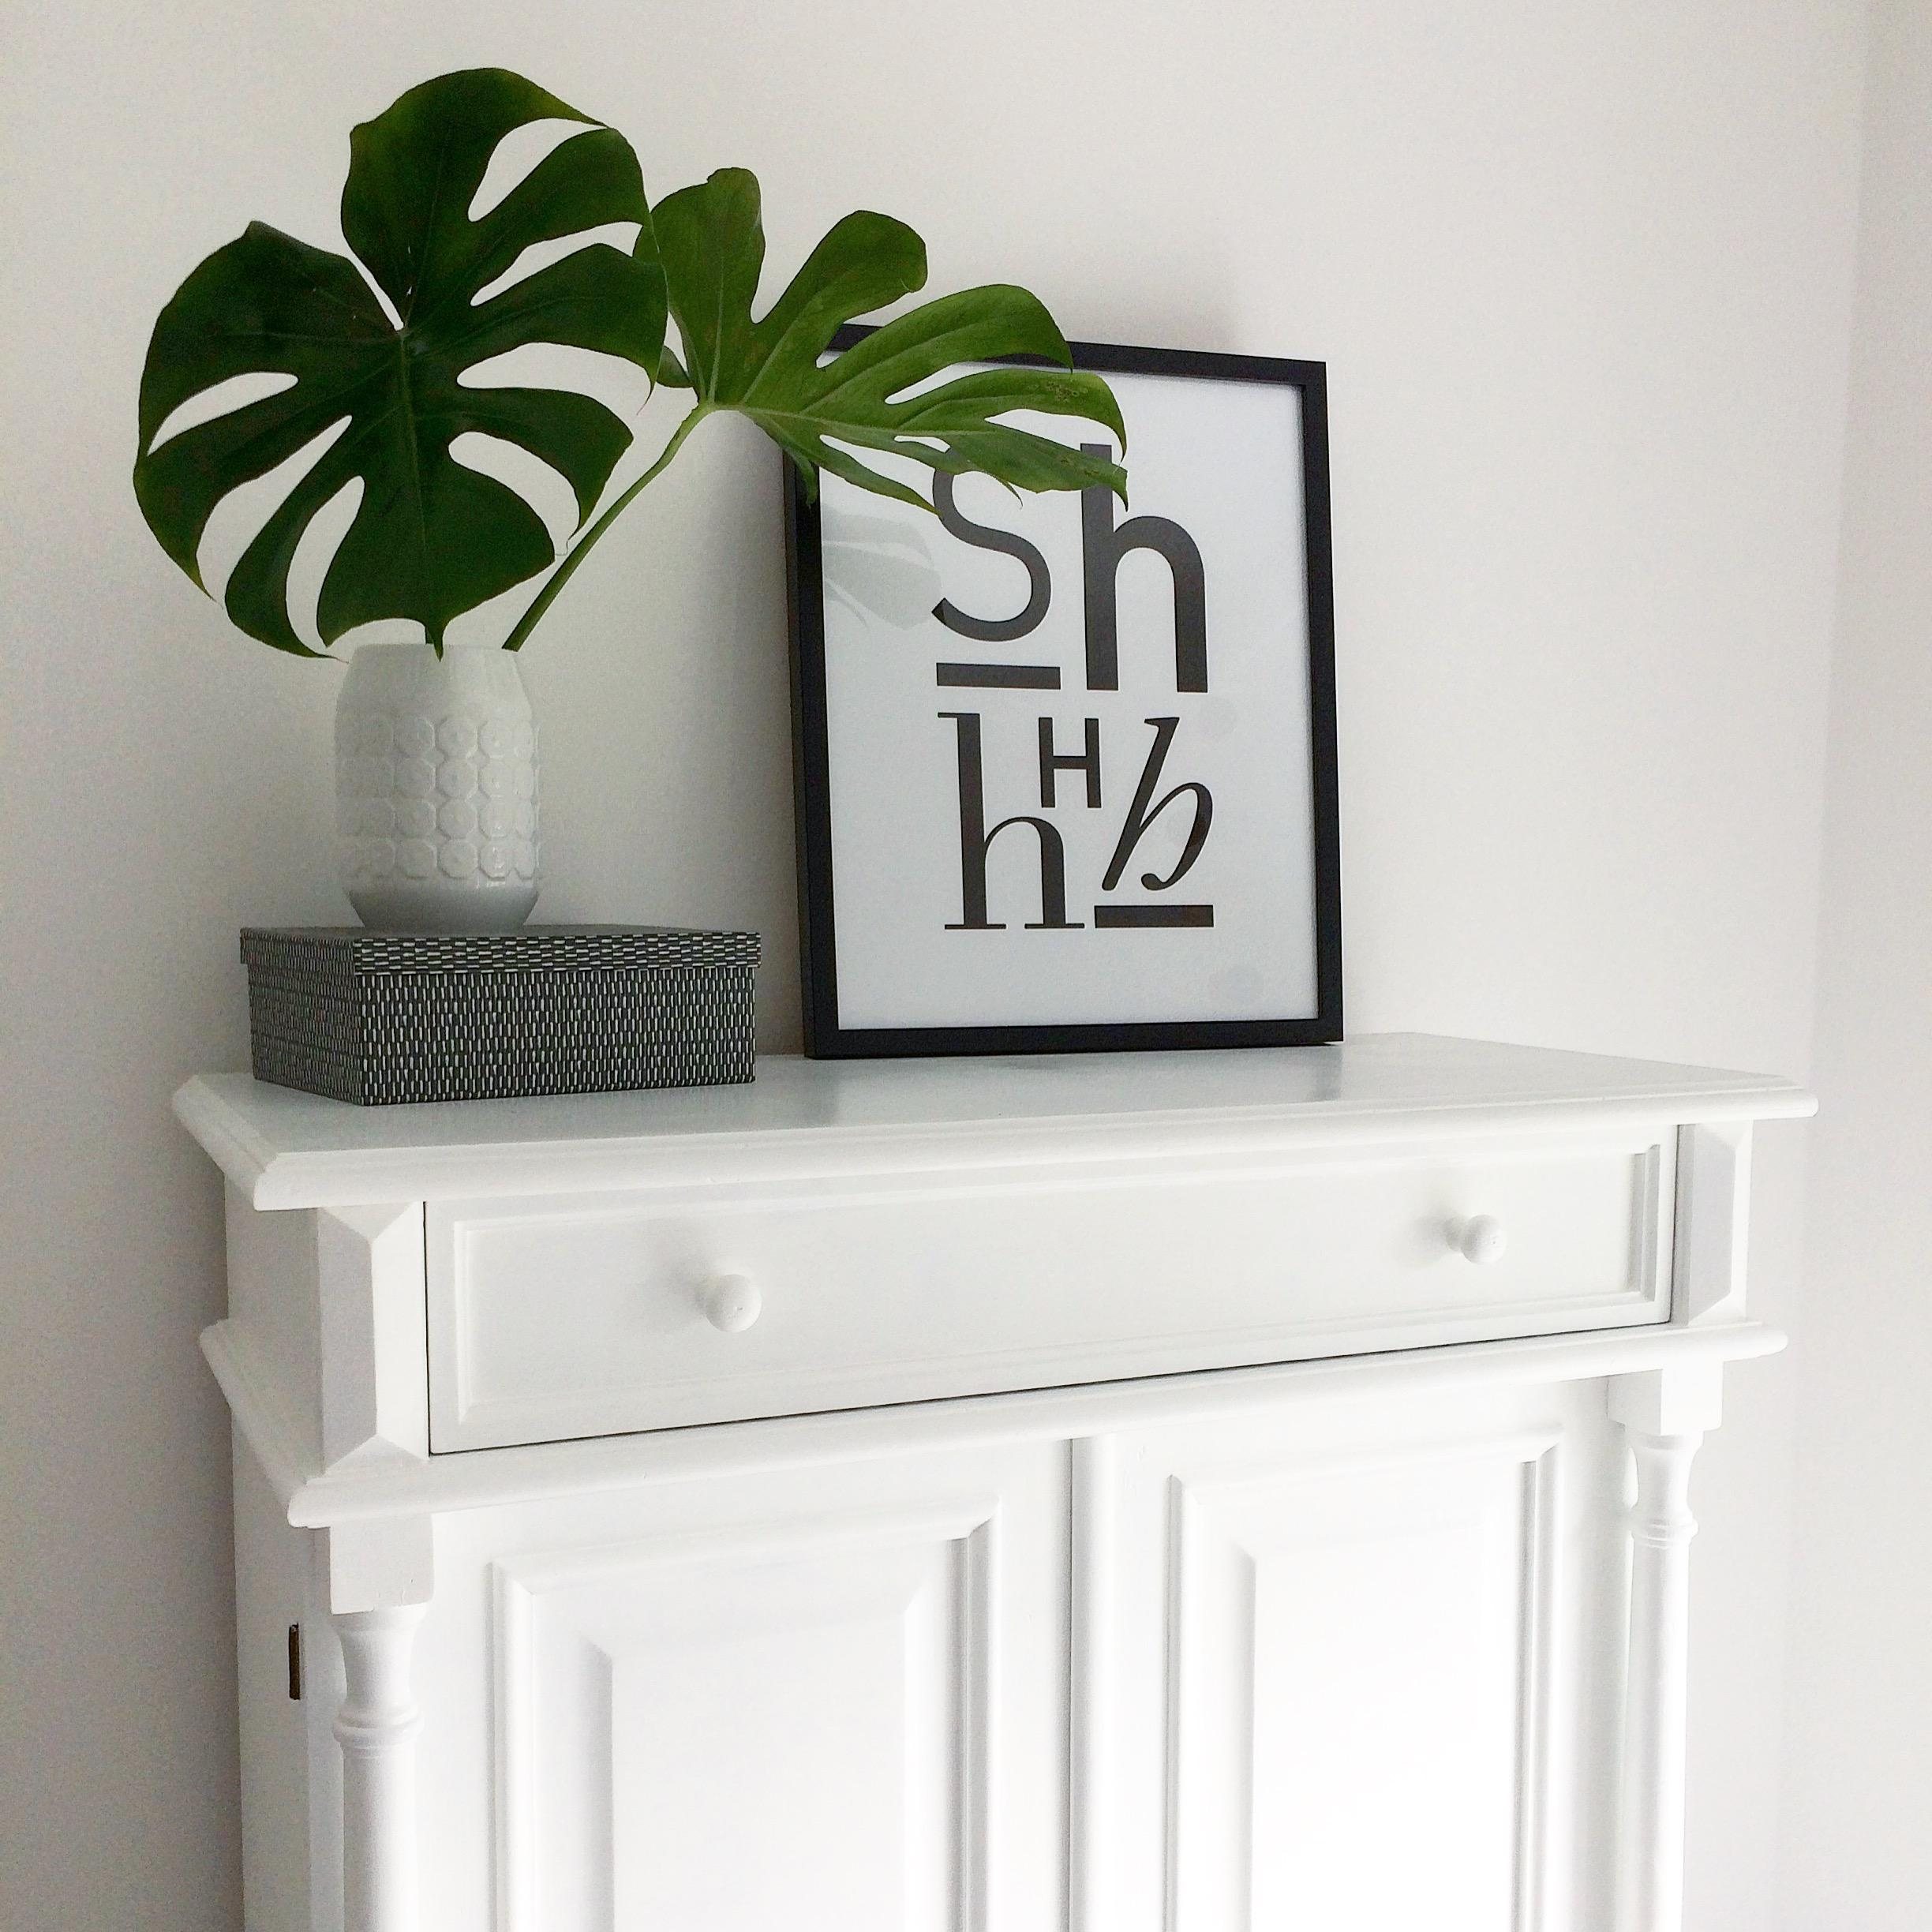 Große Monsteraliebe ❤️ #monstera #urbanjungle #interior #interiordesign #whiteliving #minimalism #monochrome